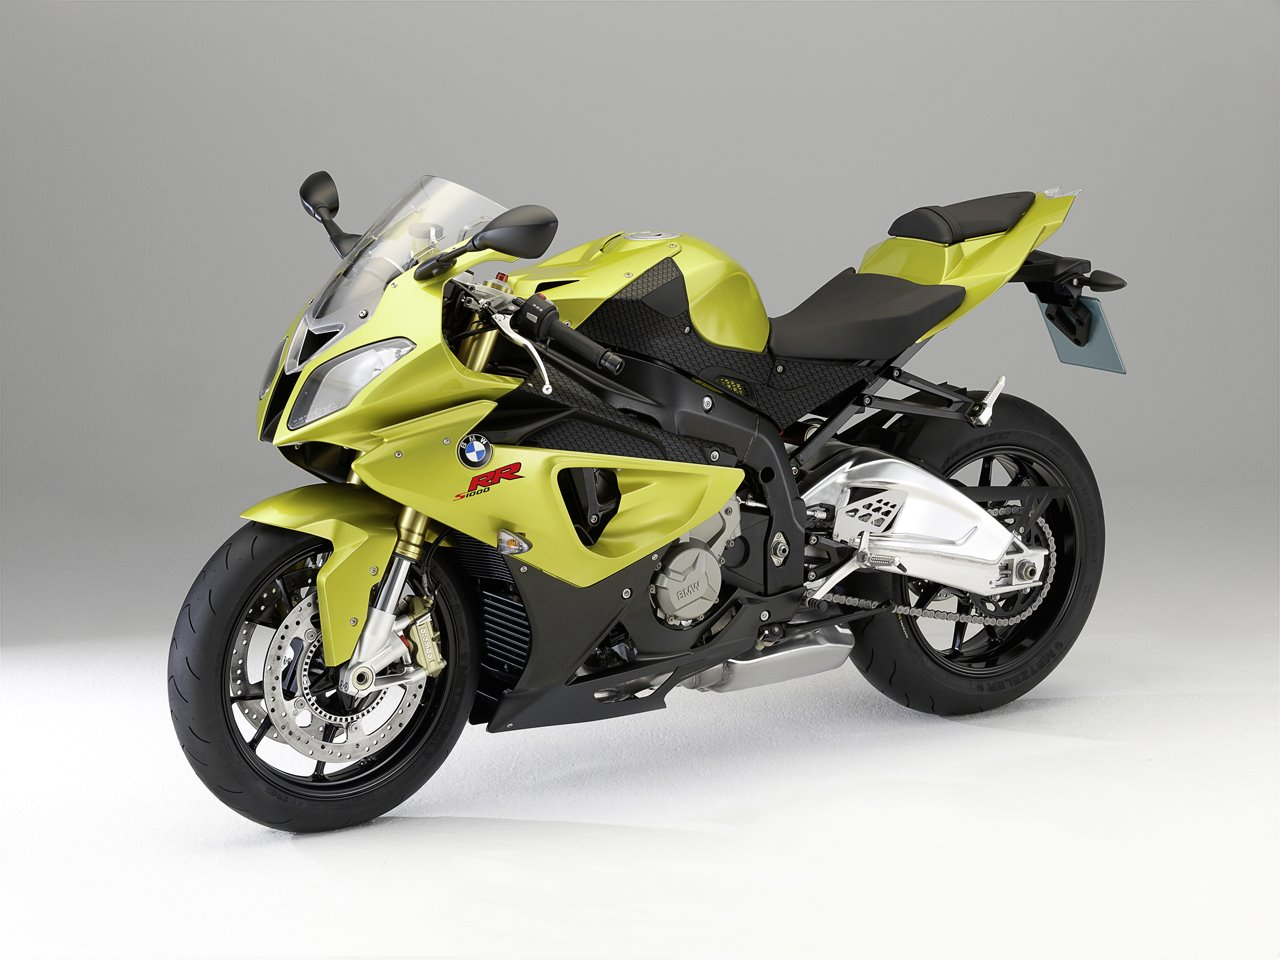 bmw s 1000 rr lan amento da bmw top motos. Black Bedroom Furniture Sets. Home Design Ideas